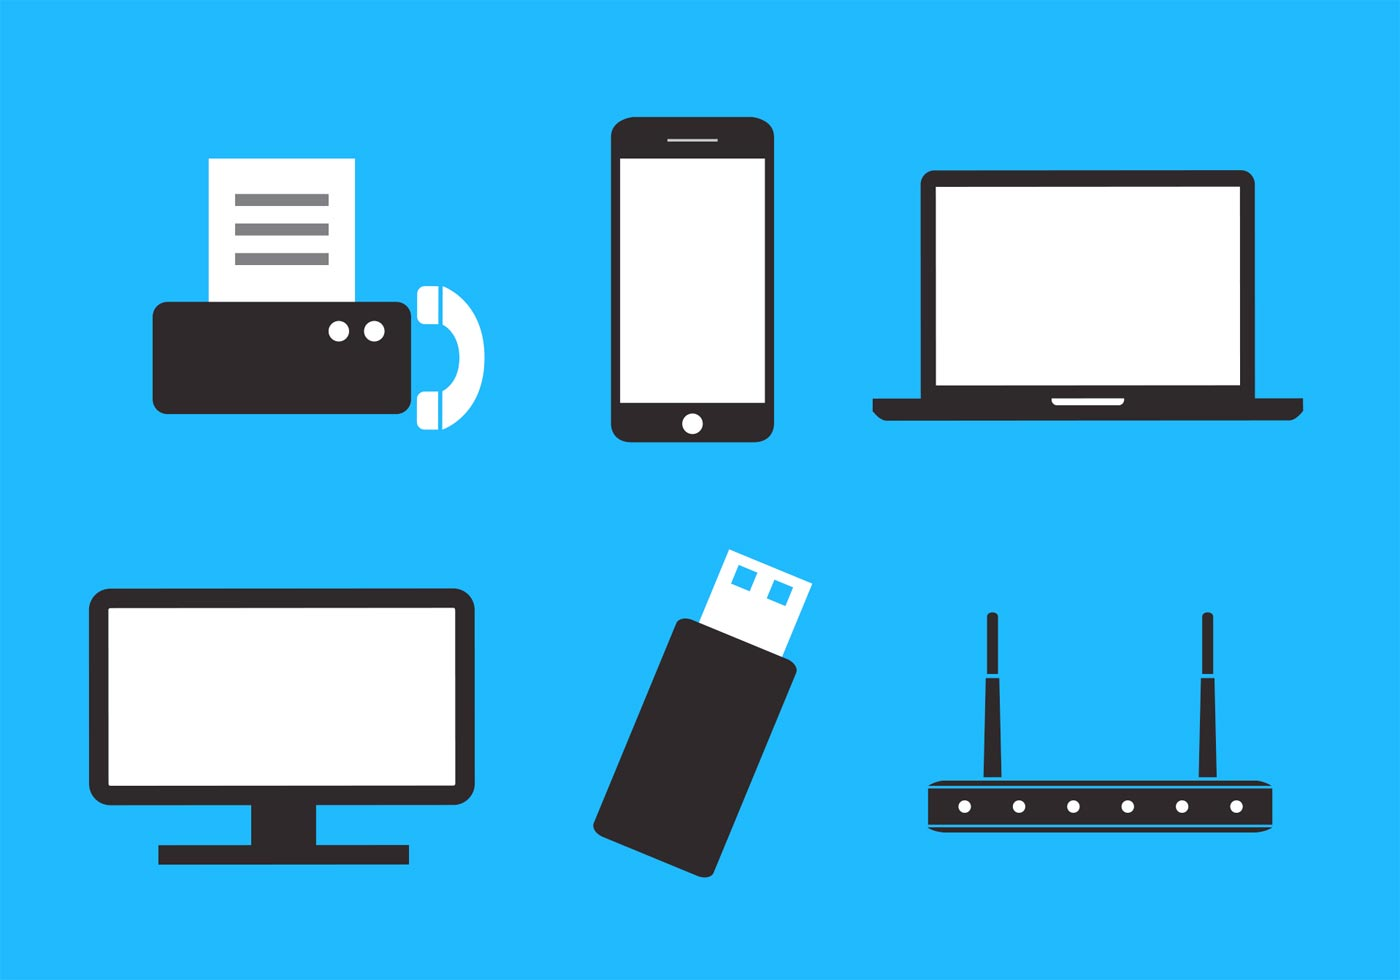 Set Of Communication And Data Storage Devices In Vector